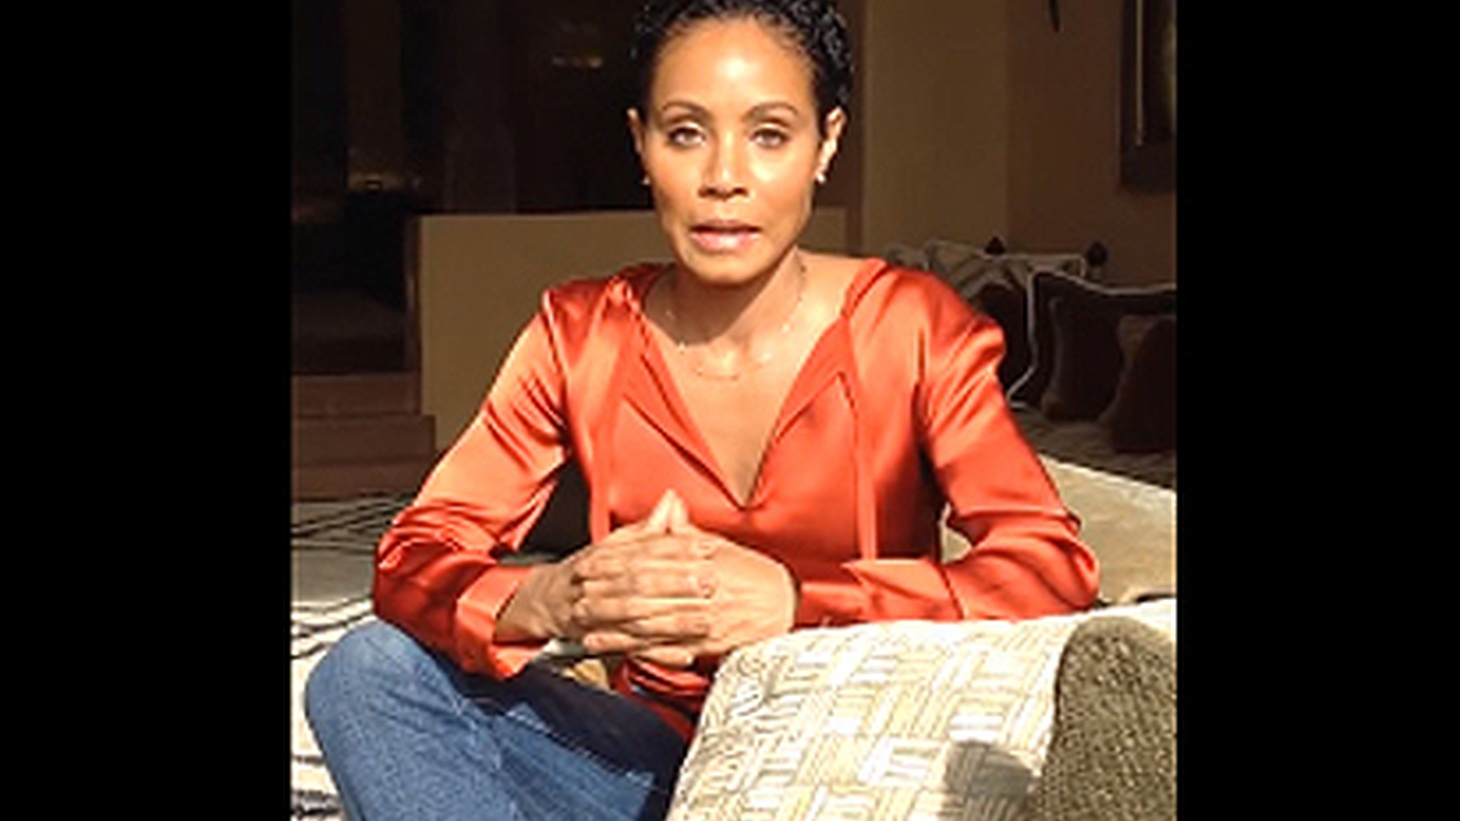 Earlier this week, Jada Pinkett Smith put out a video on YouTube calling for a boycott of the Oscars ceremony. That's because #OscarsSoWhite has been a prevalent issue with the lack of minority nominees for the awards for many years in a row.